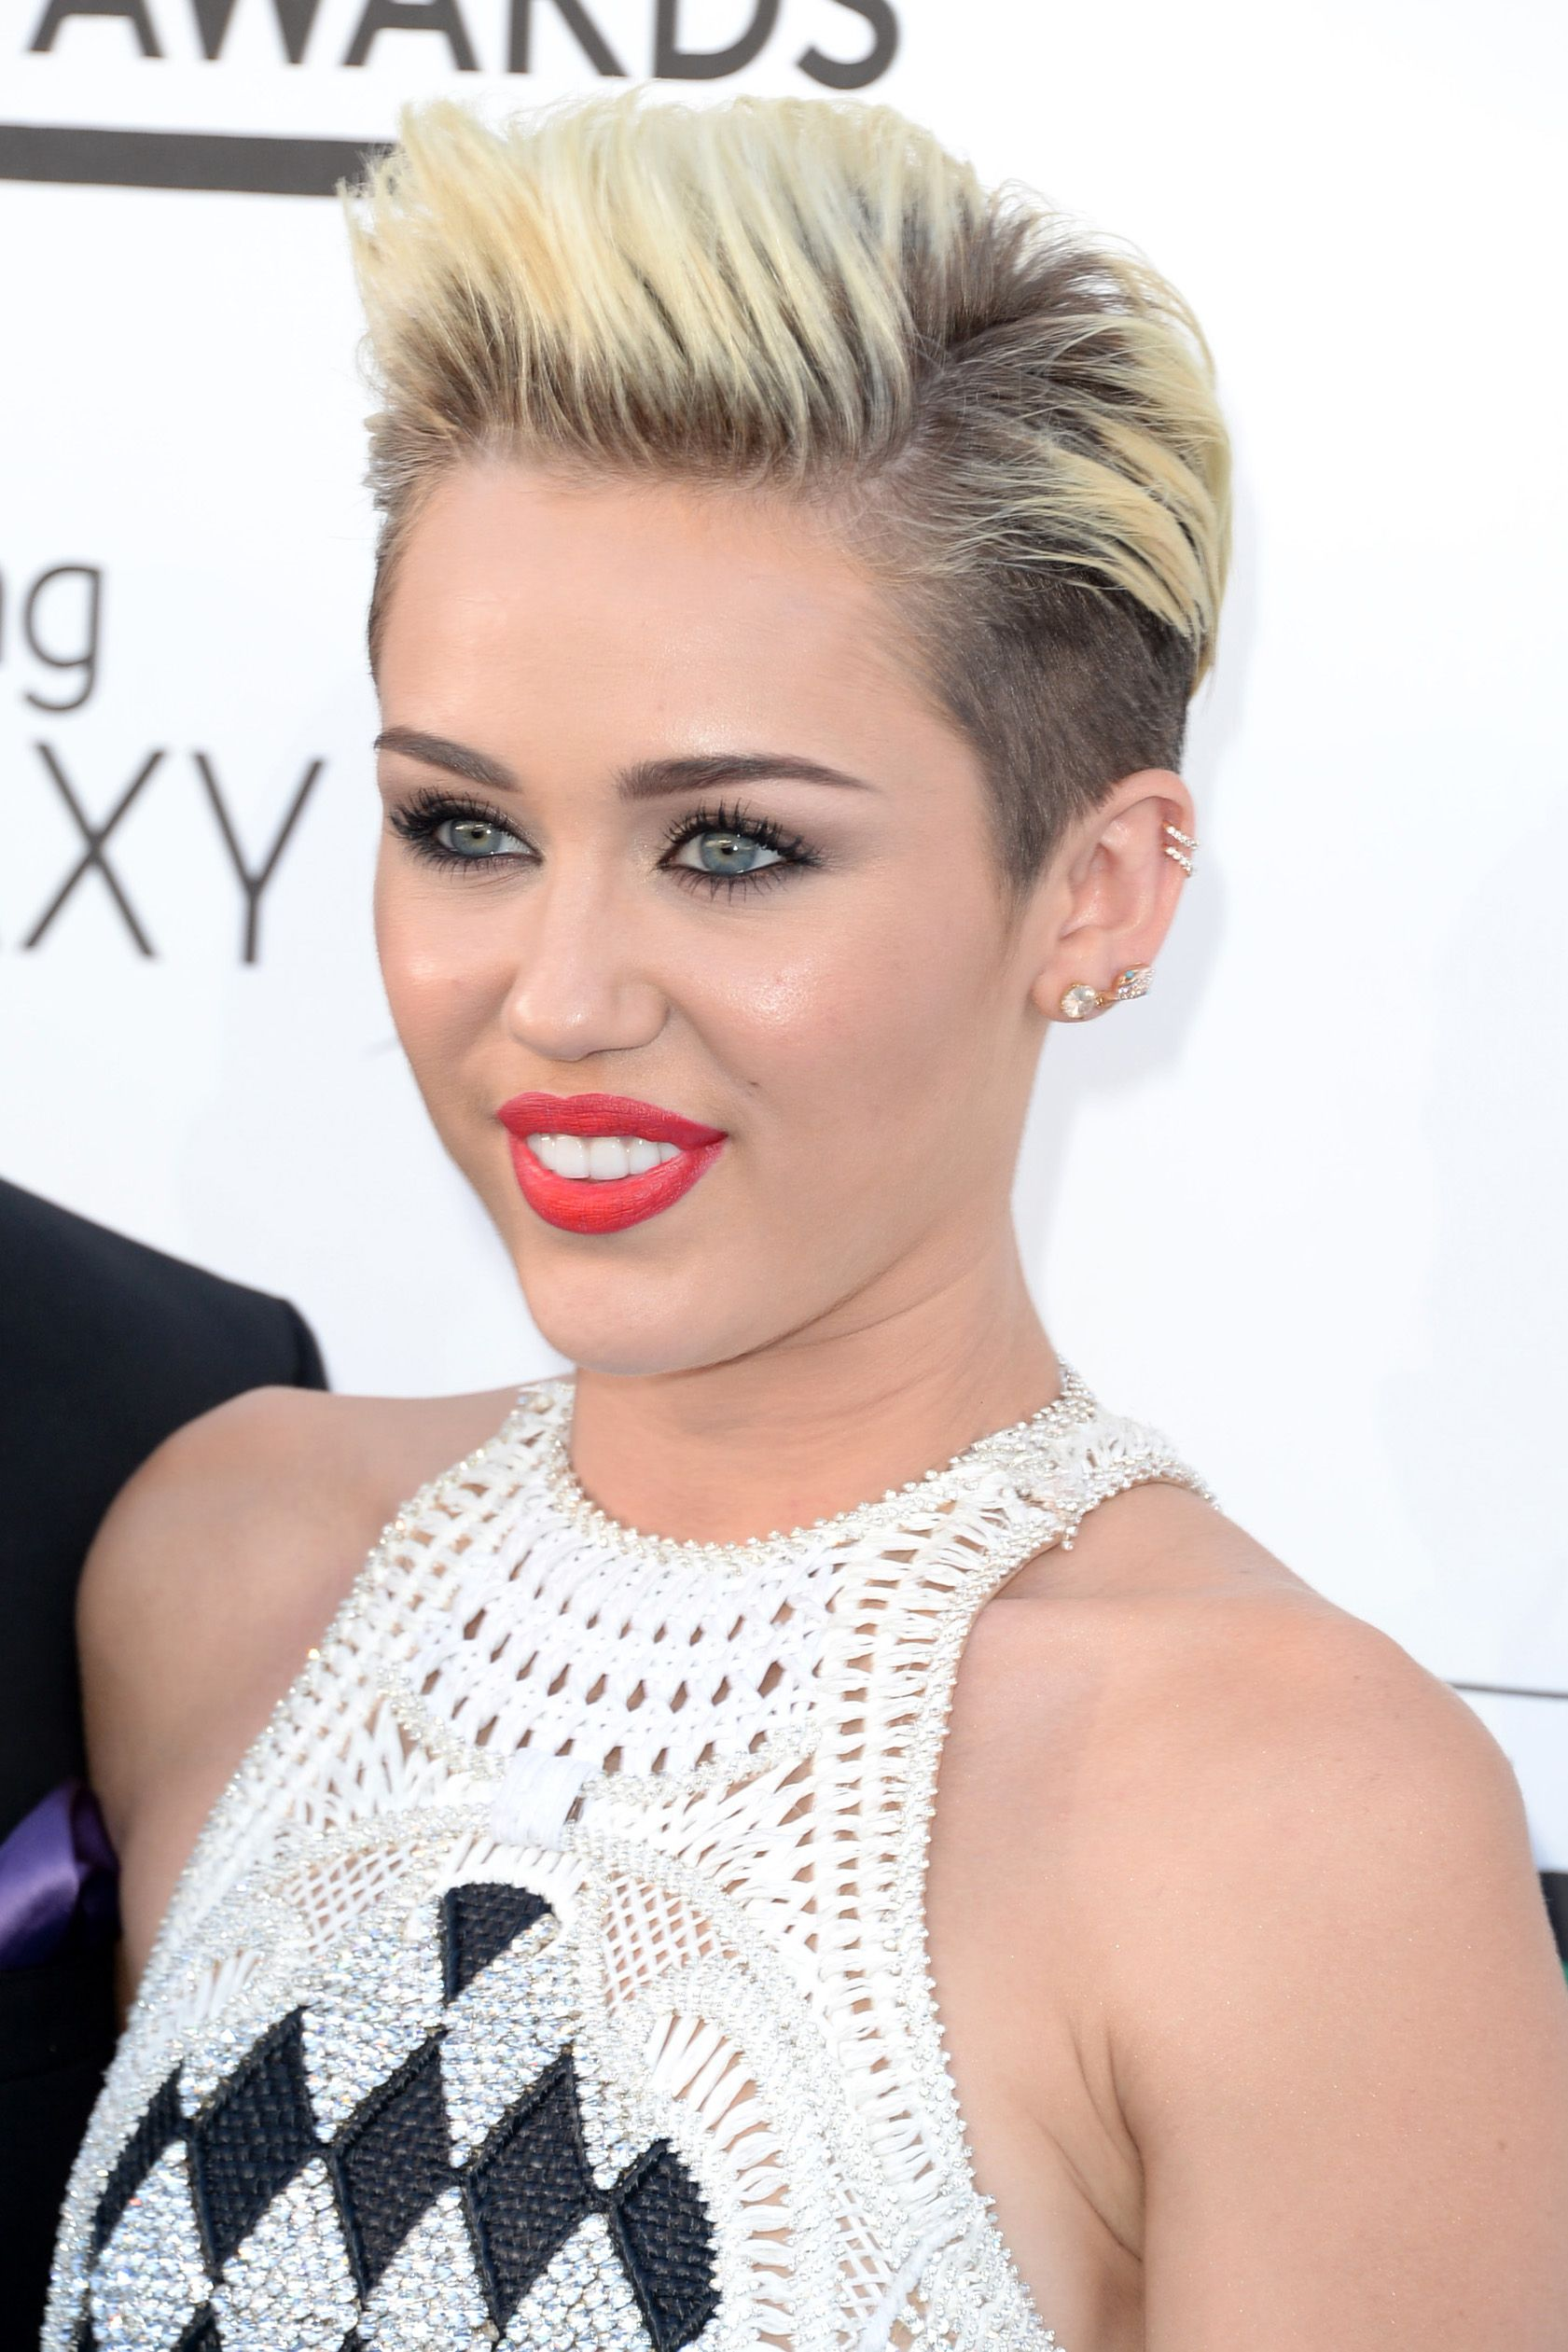 miley cyrus hair style miley cyrus hairstyle hair 5722